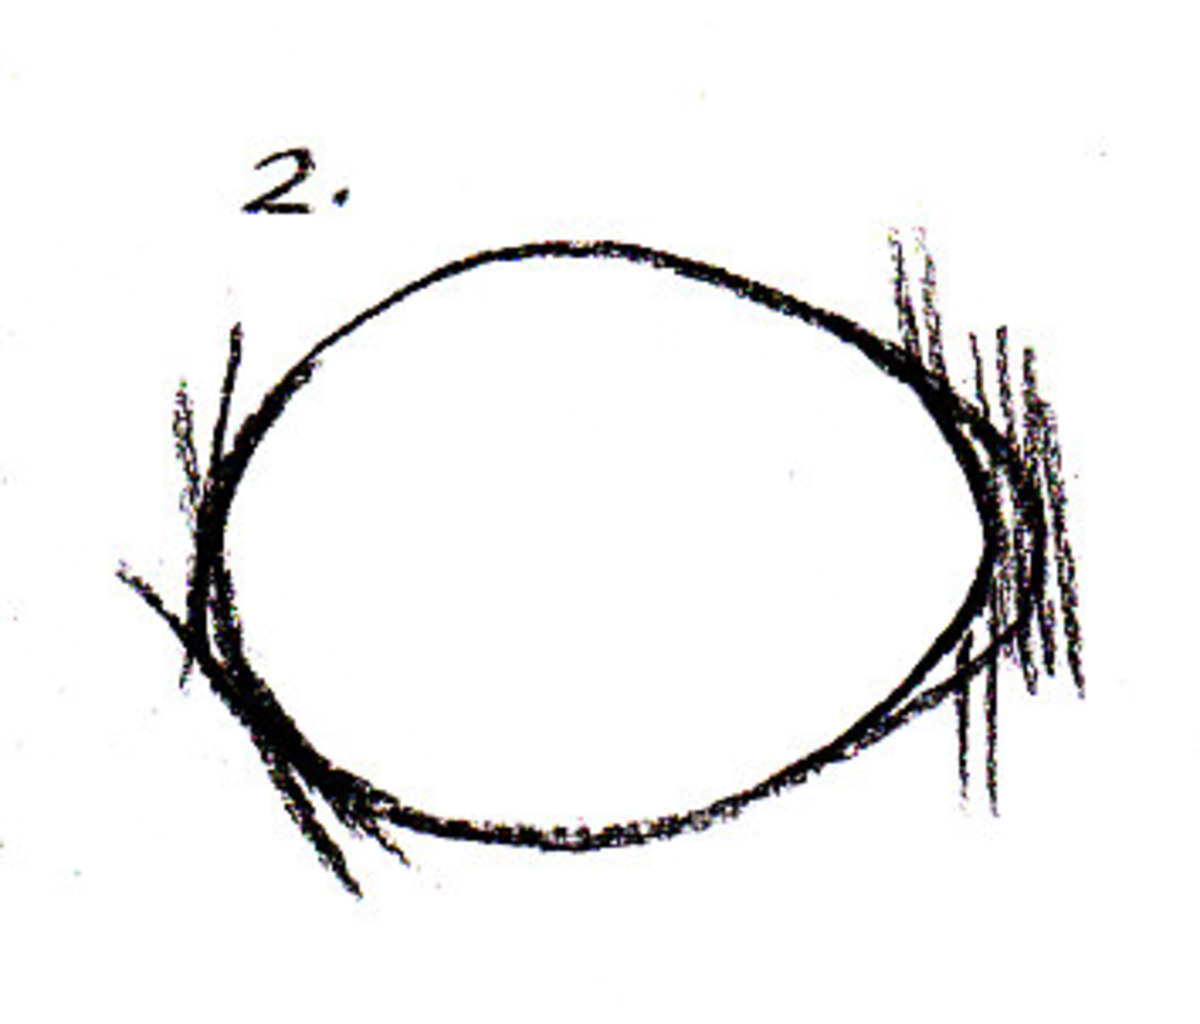 Egg sketched from life by Robert A. Sloan